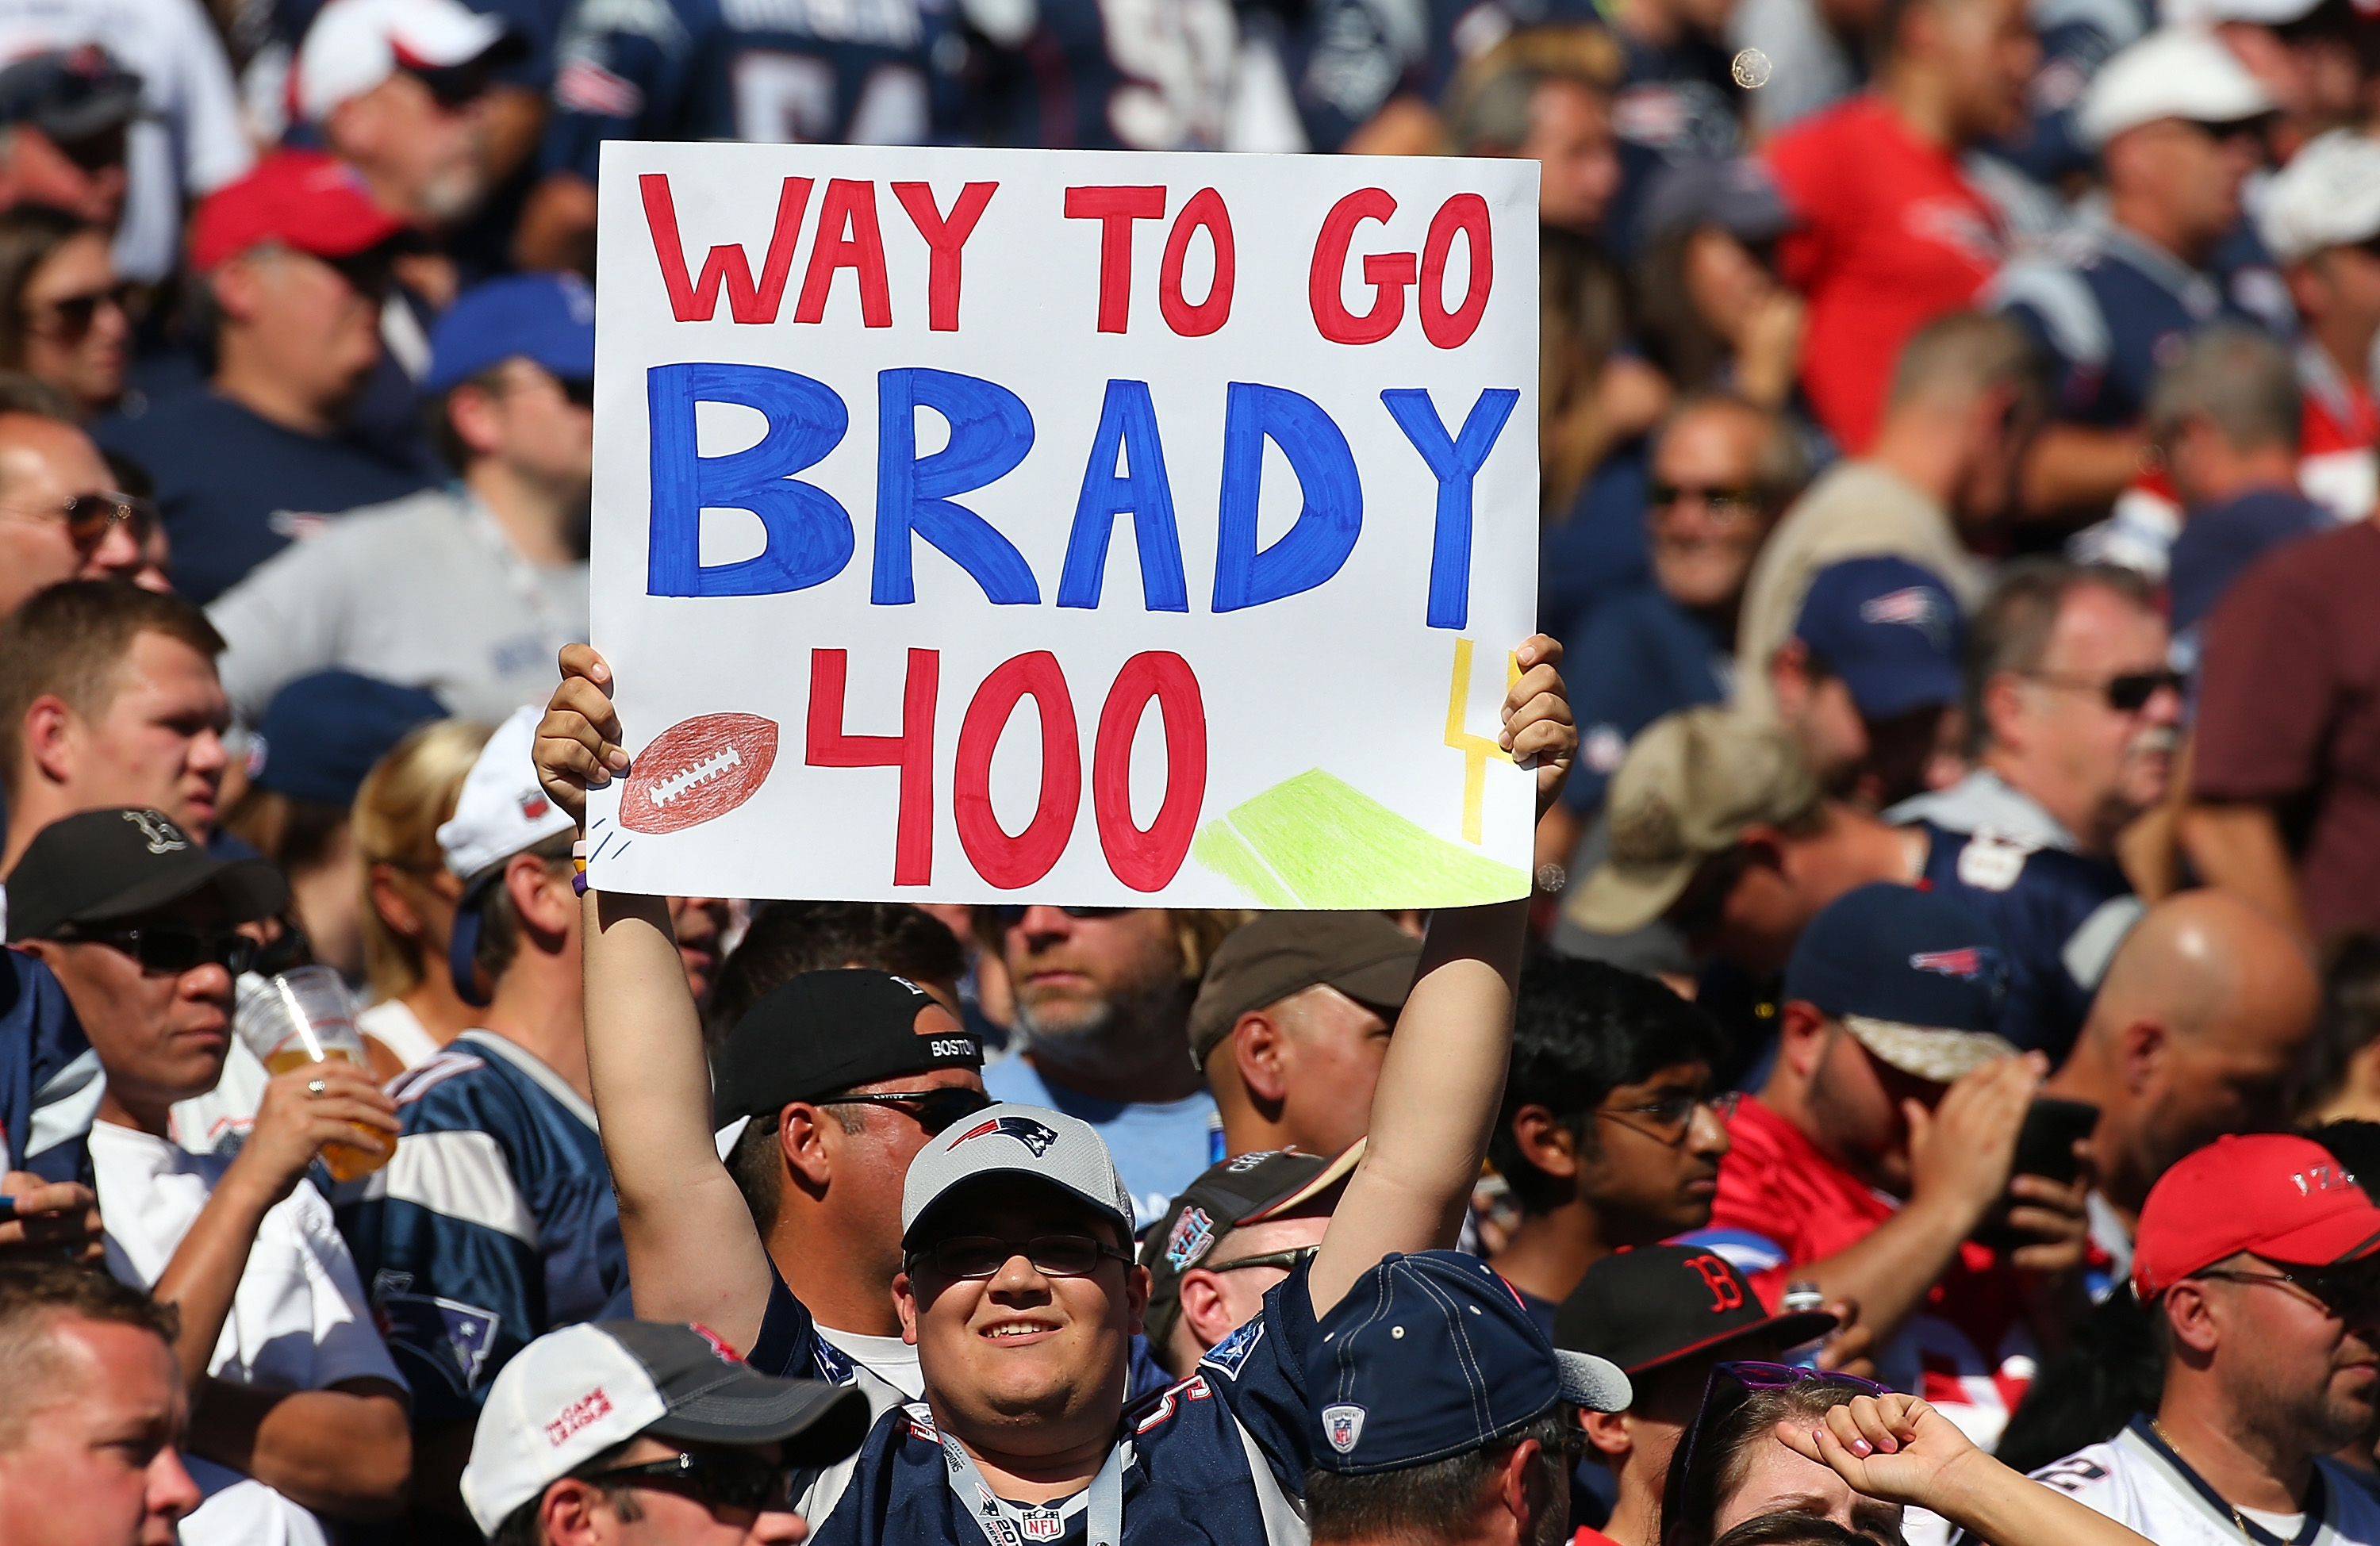 FOXBORO, MA - SEPTEMBER 27:  A fan shows his support for Tom Brady #12 of the New England Patriots who threw his 400 touchdown pass in the second quarter during a game with Jacksonville Jaguars at Gillette Stadium on September 27, 2015 in Foxboro, Massachusetts. (Photo by Jim Rogash/Getty Images)